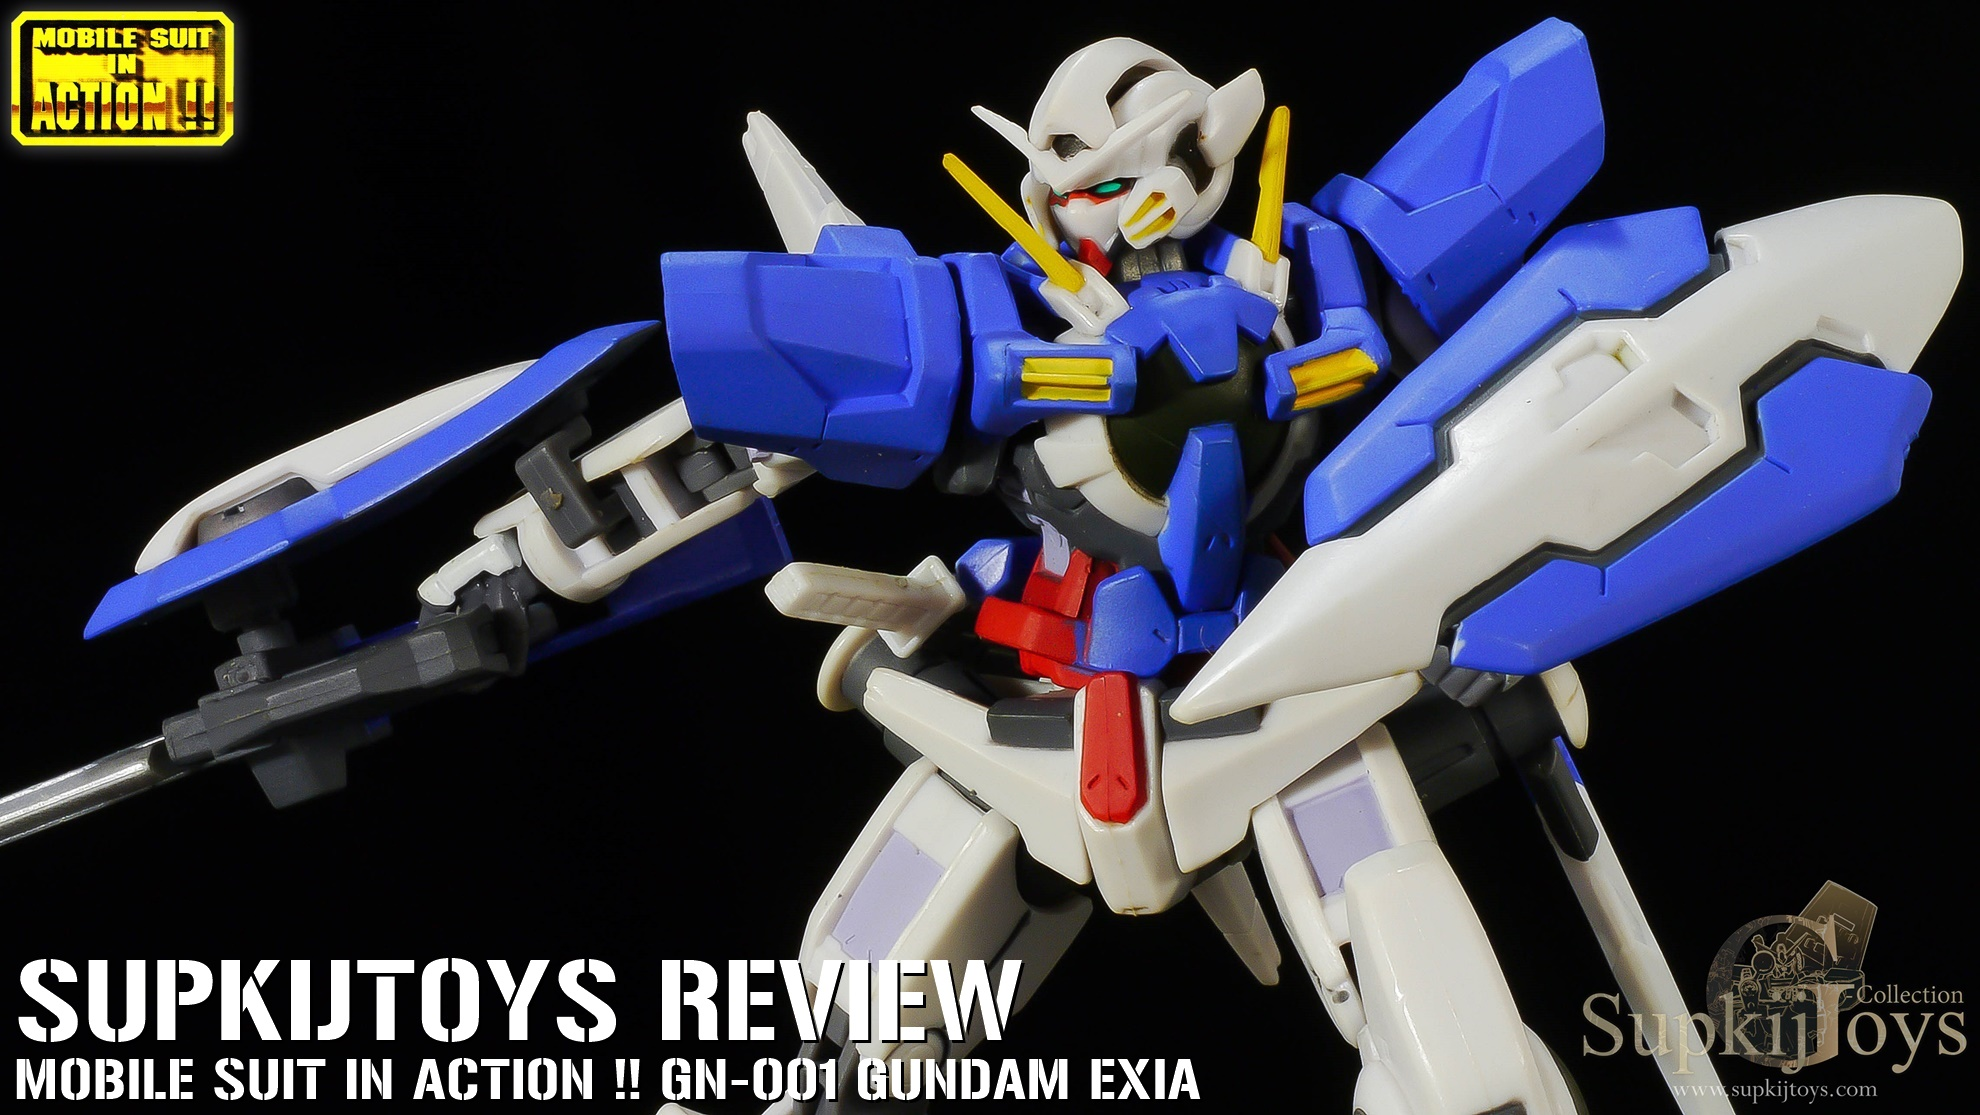 MIA MSIA Mobile Suit in Action !! GN-001 Gundam Exia